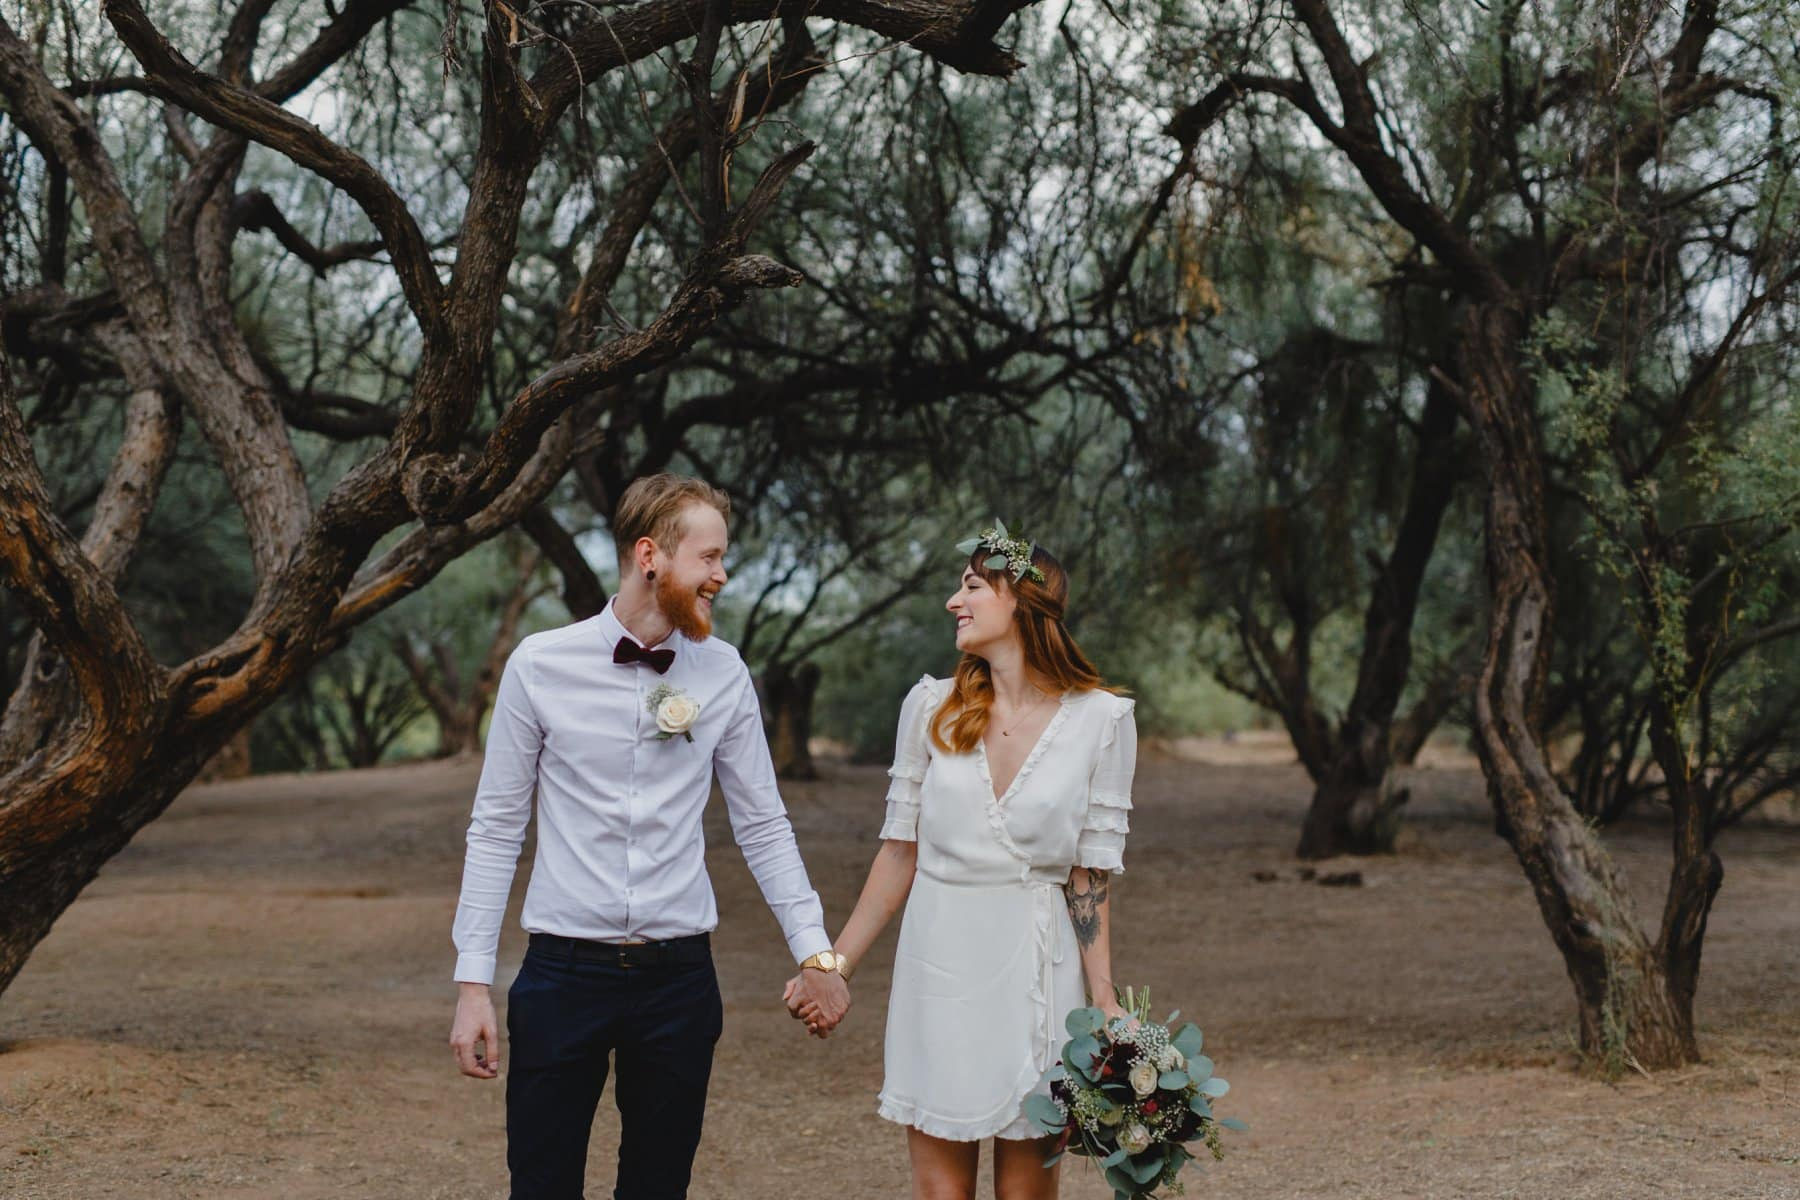 boho forest elopement location in Phoenix area